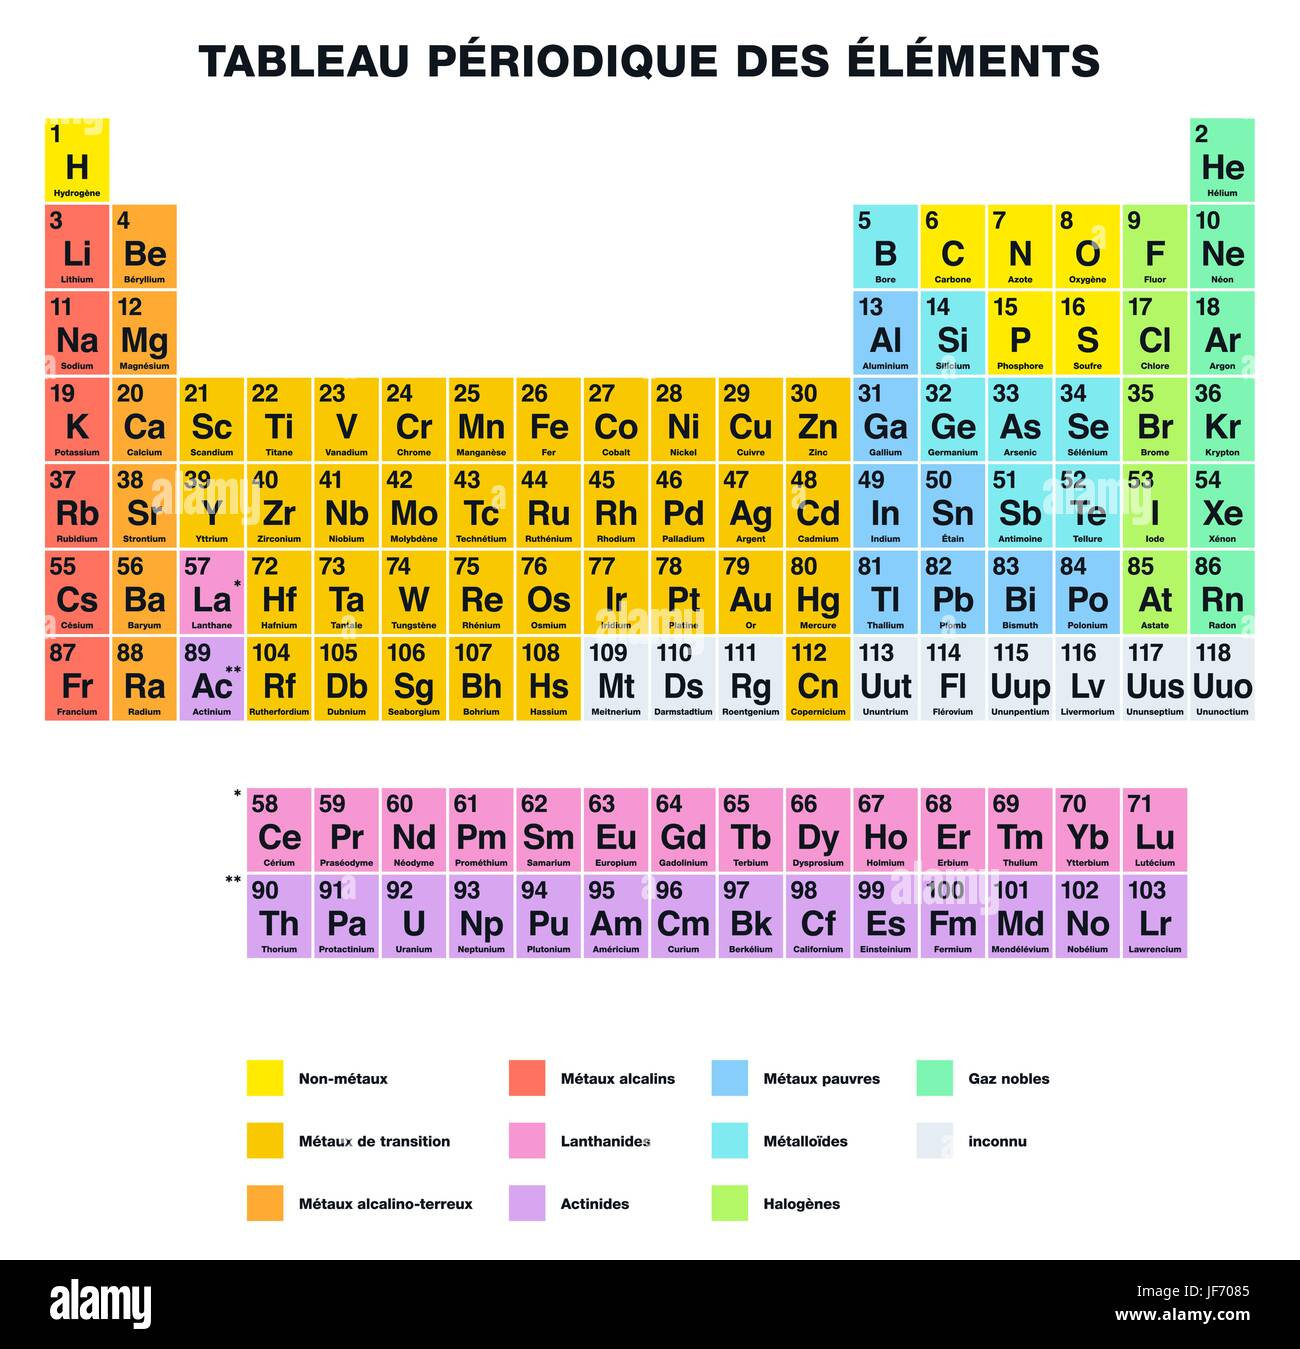 Periodic table of the elements french labeling stock vector art periodic table of the elements french labeling urtaz Images